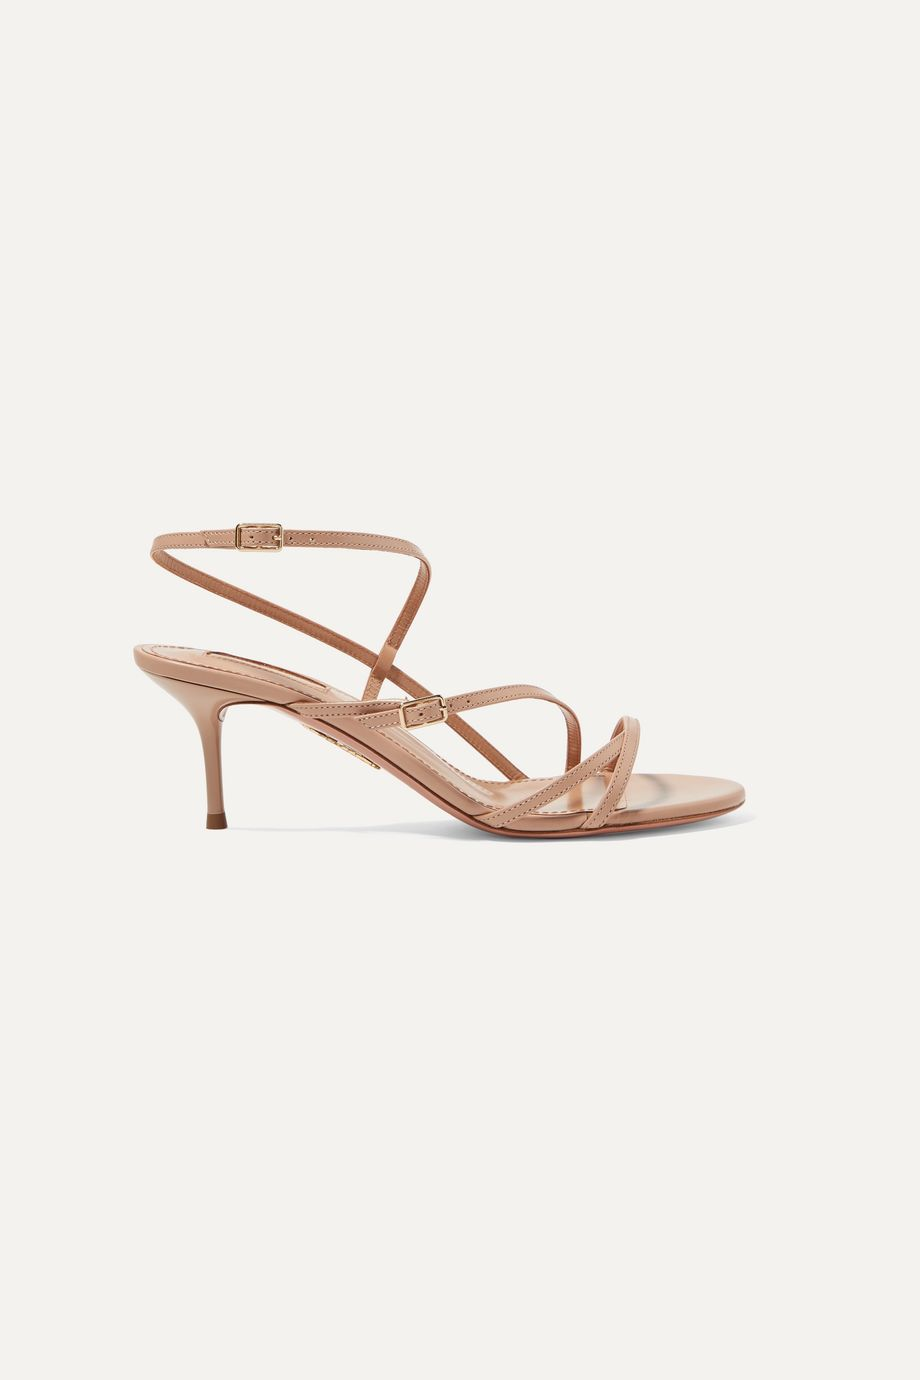 Aquazzura Carolyne 60 leather sandals